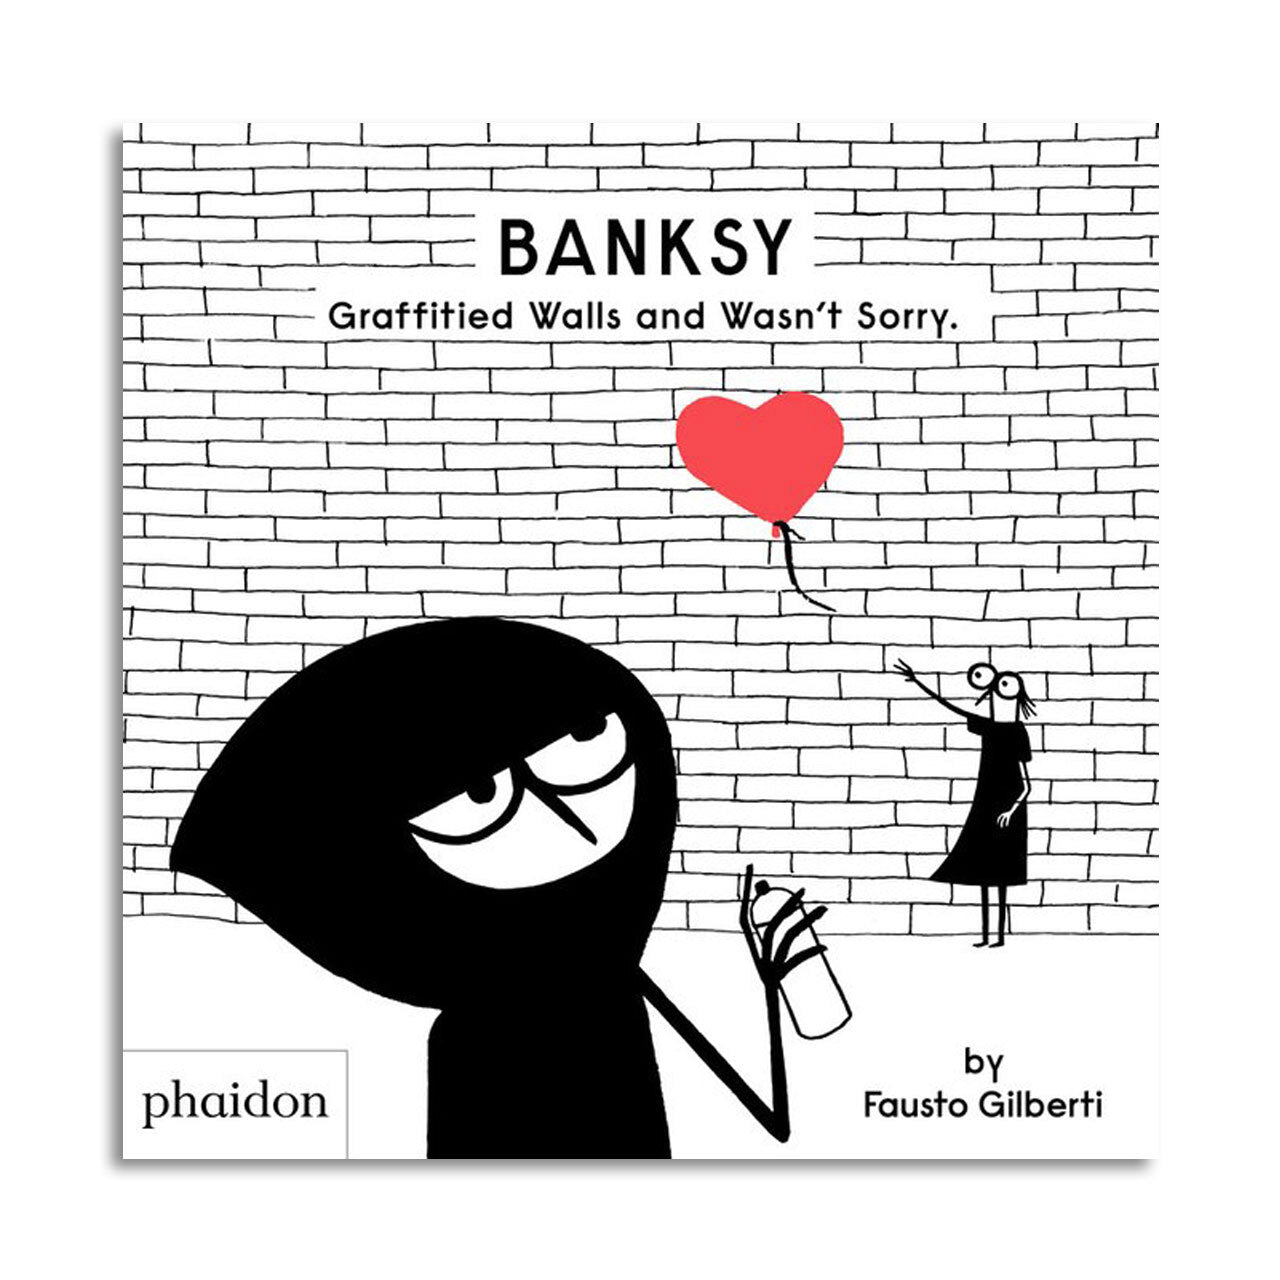 Banksy: Graffitied Walls and Wasn't Sorry